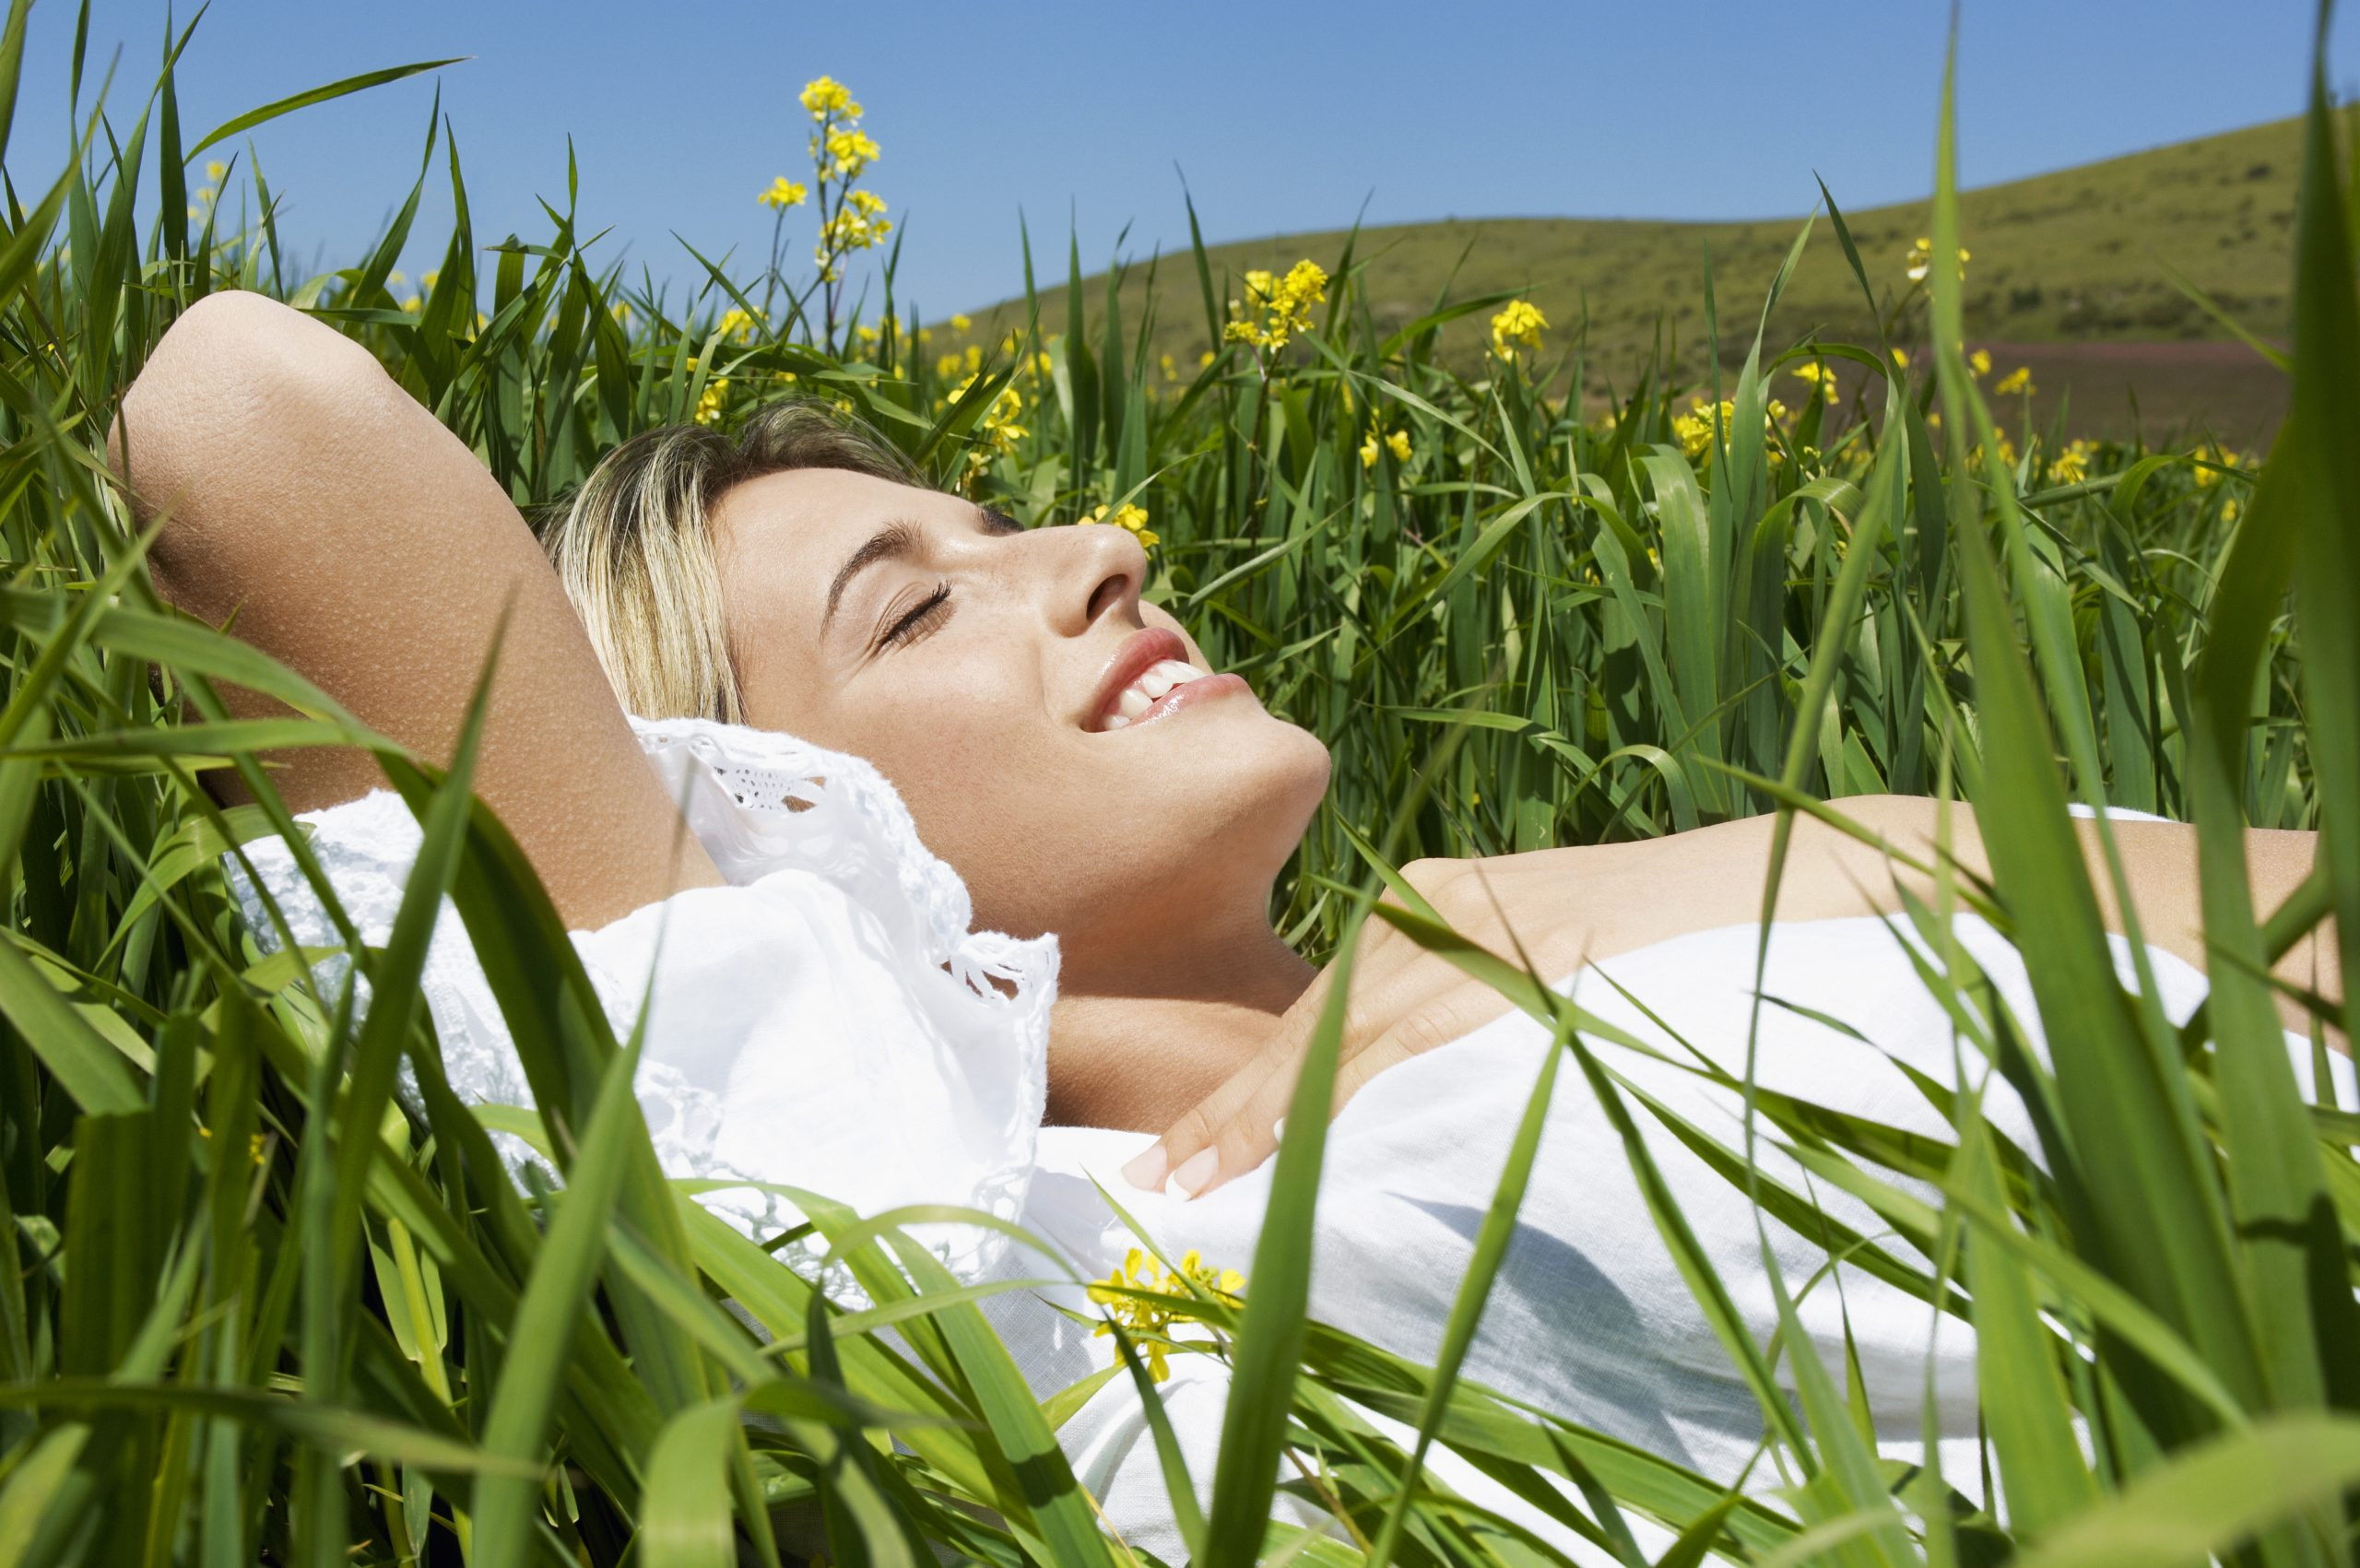 contented woman in a field